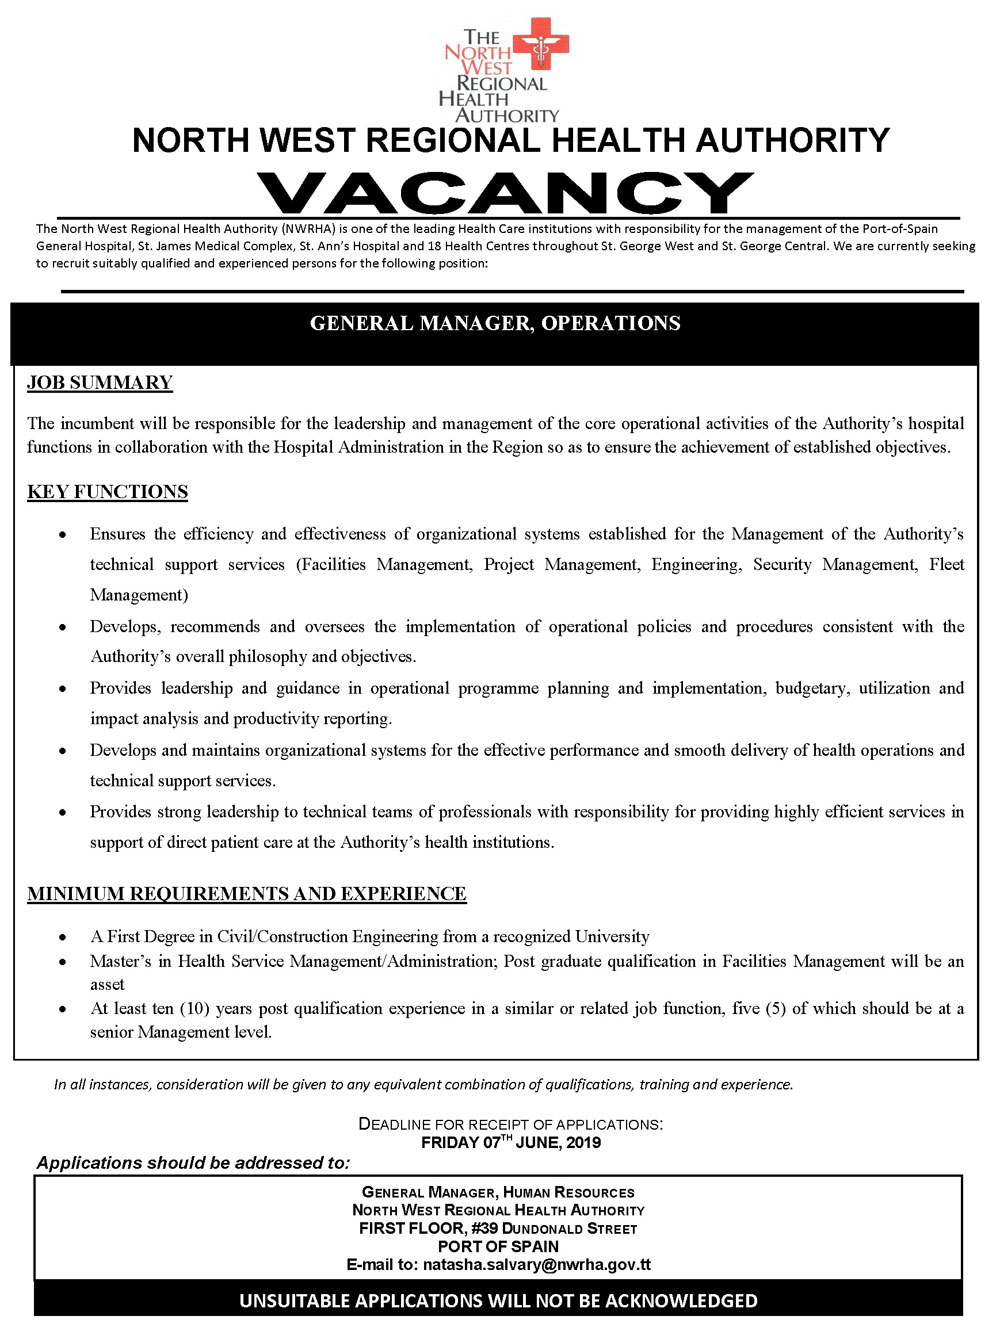 Vacancy – General Manager, Operations – The North West